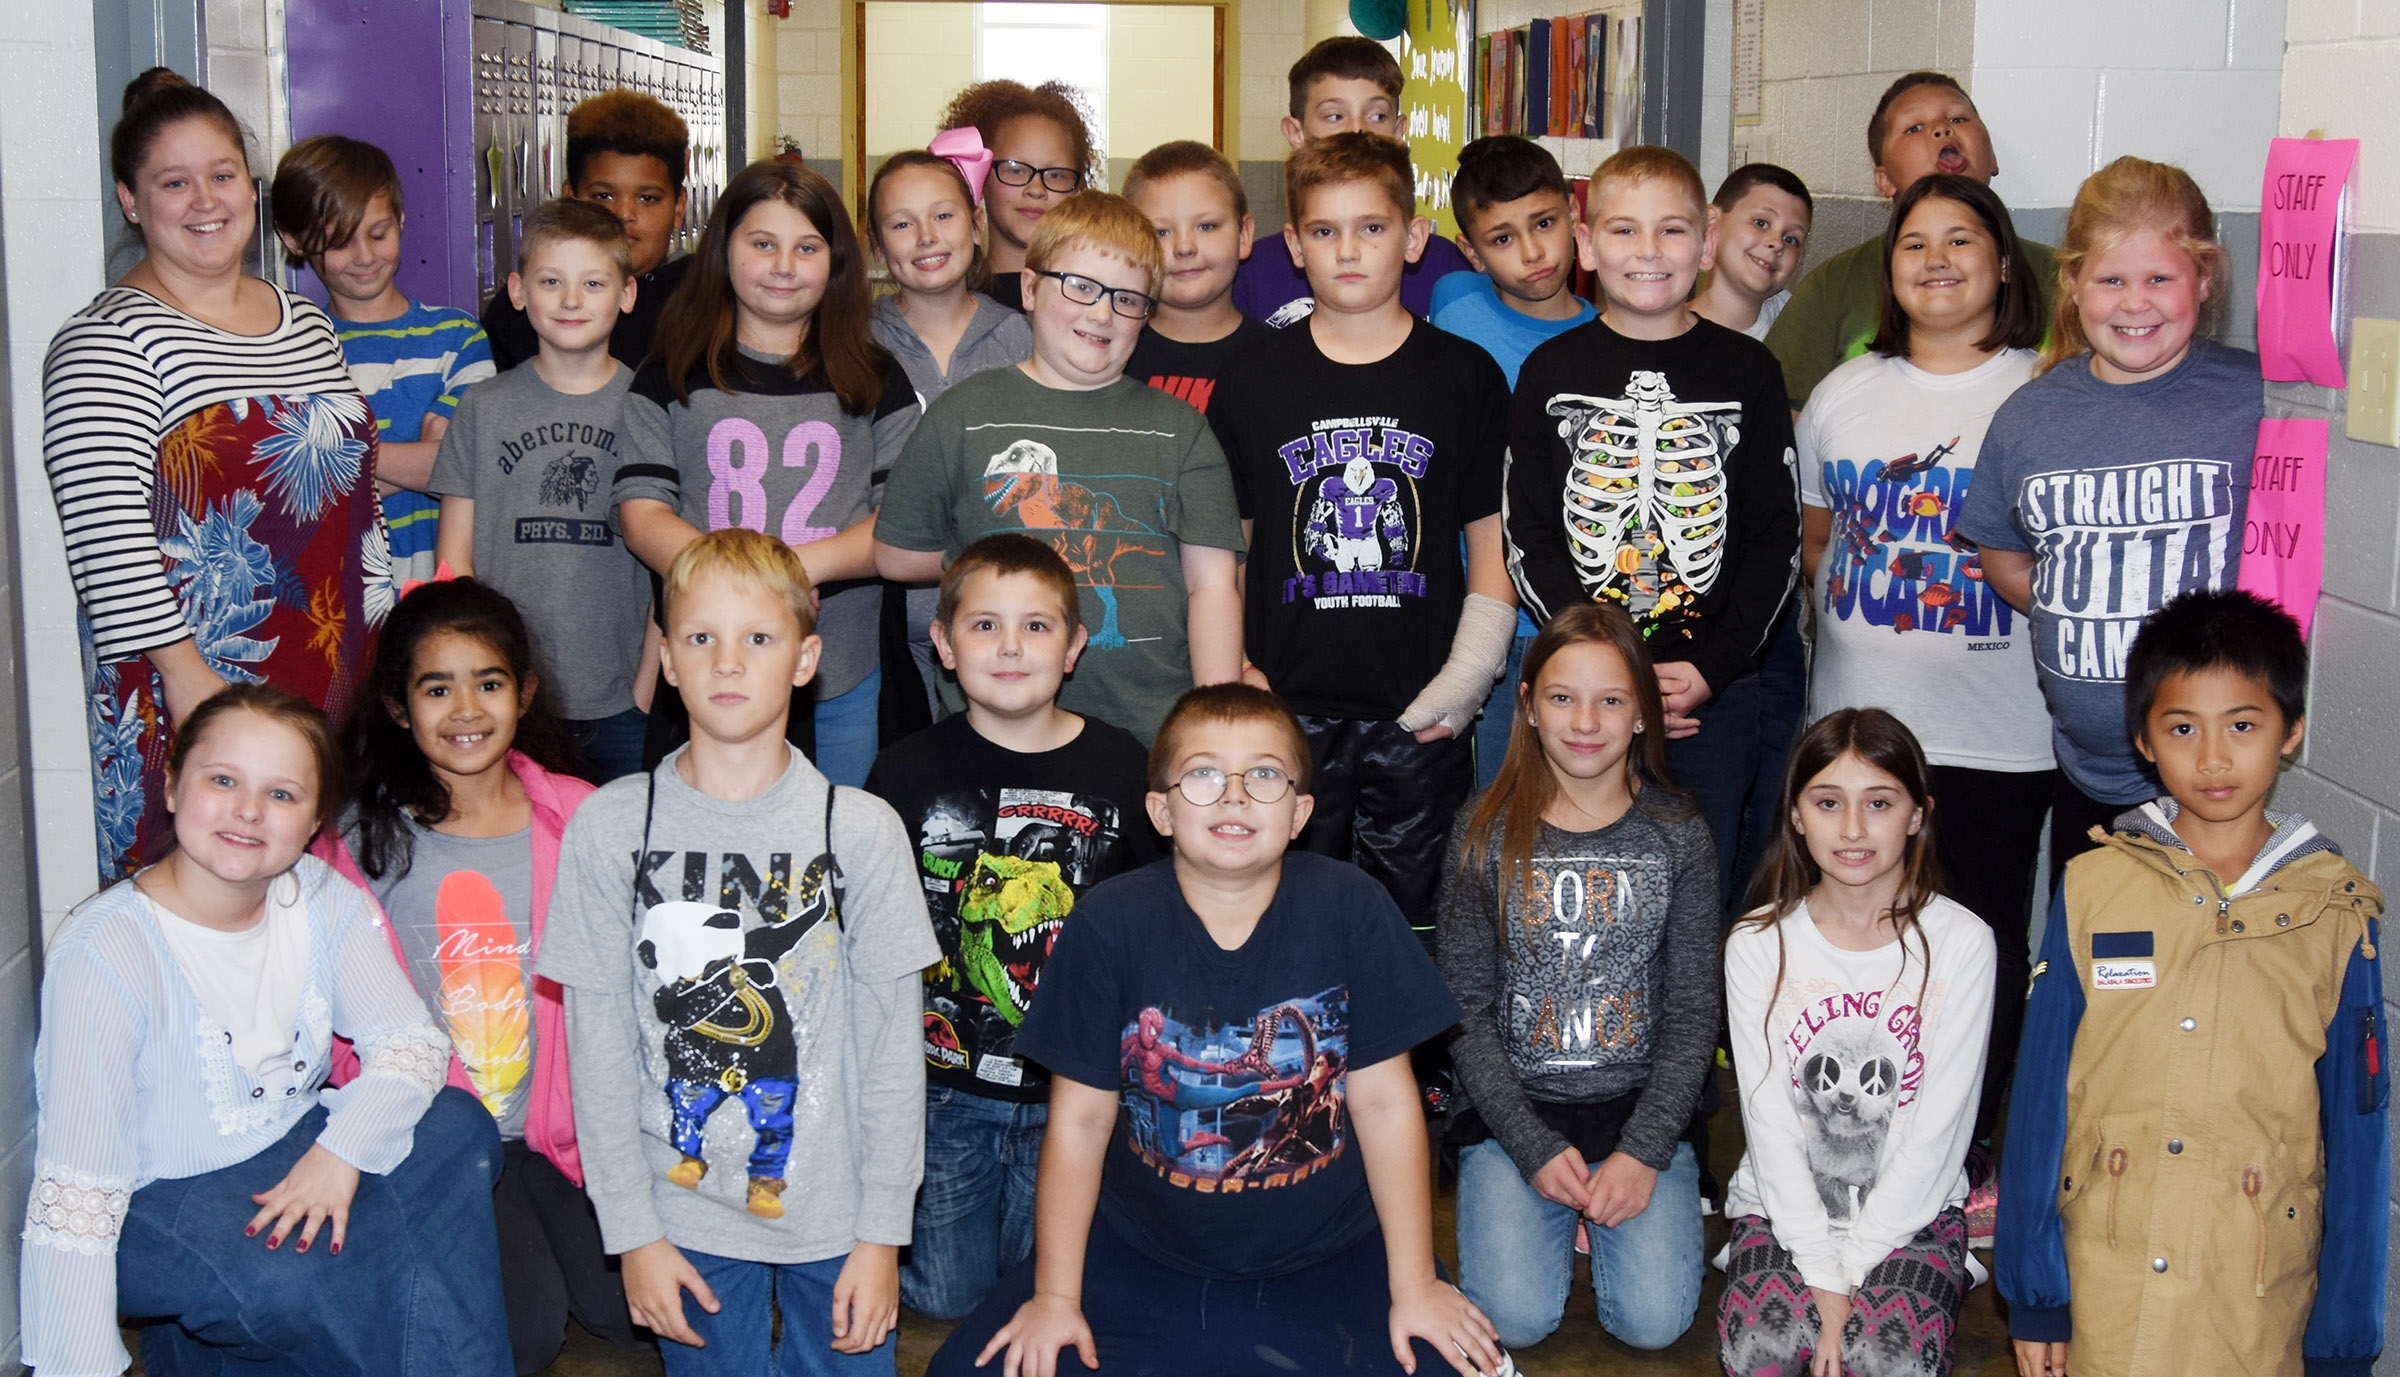 CES fourth-grade students in Maranda Wright's class collected more than 200 cans of food in the Red Ribbon Week food drive. They are pictured with substitute teacher Jordyn Bray.